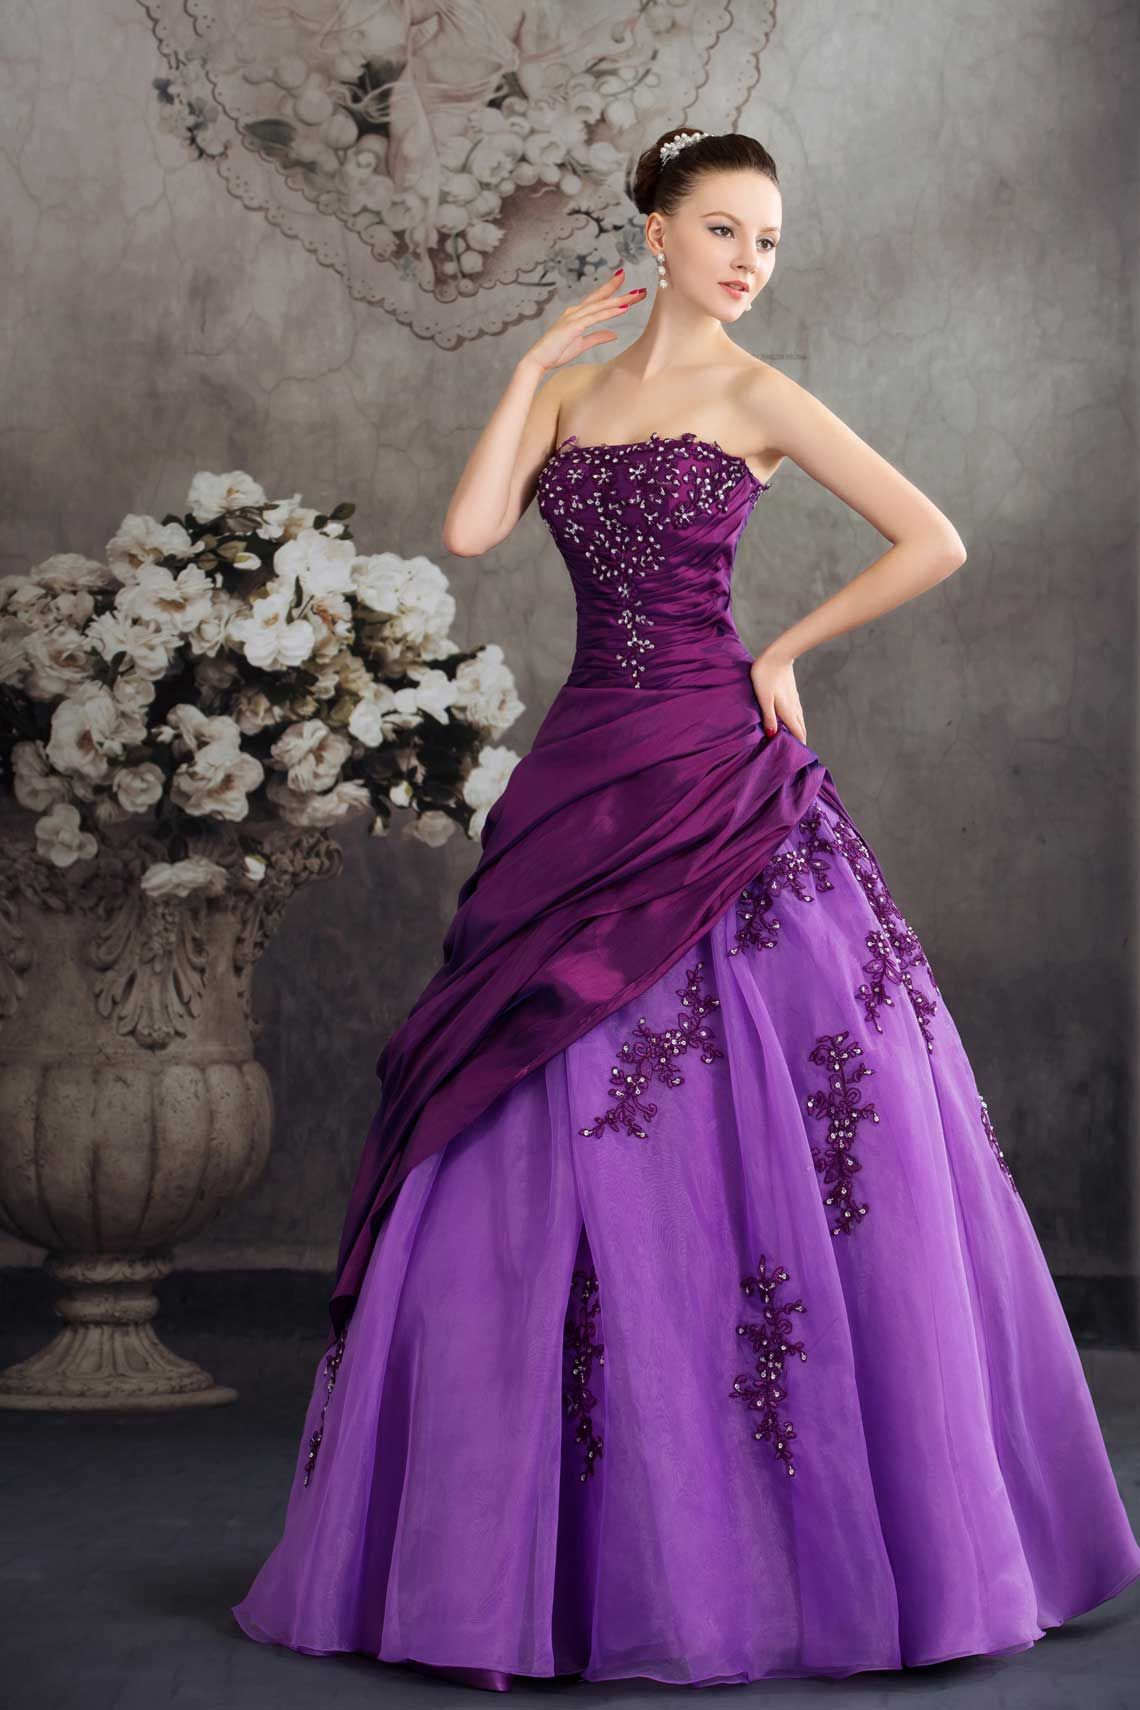 This dress it really pretty, not for a wedding gown but maybe if it wasn't poofy…